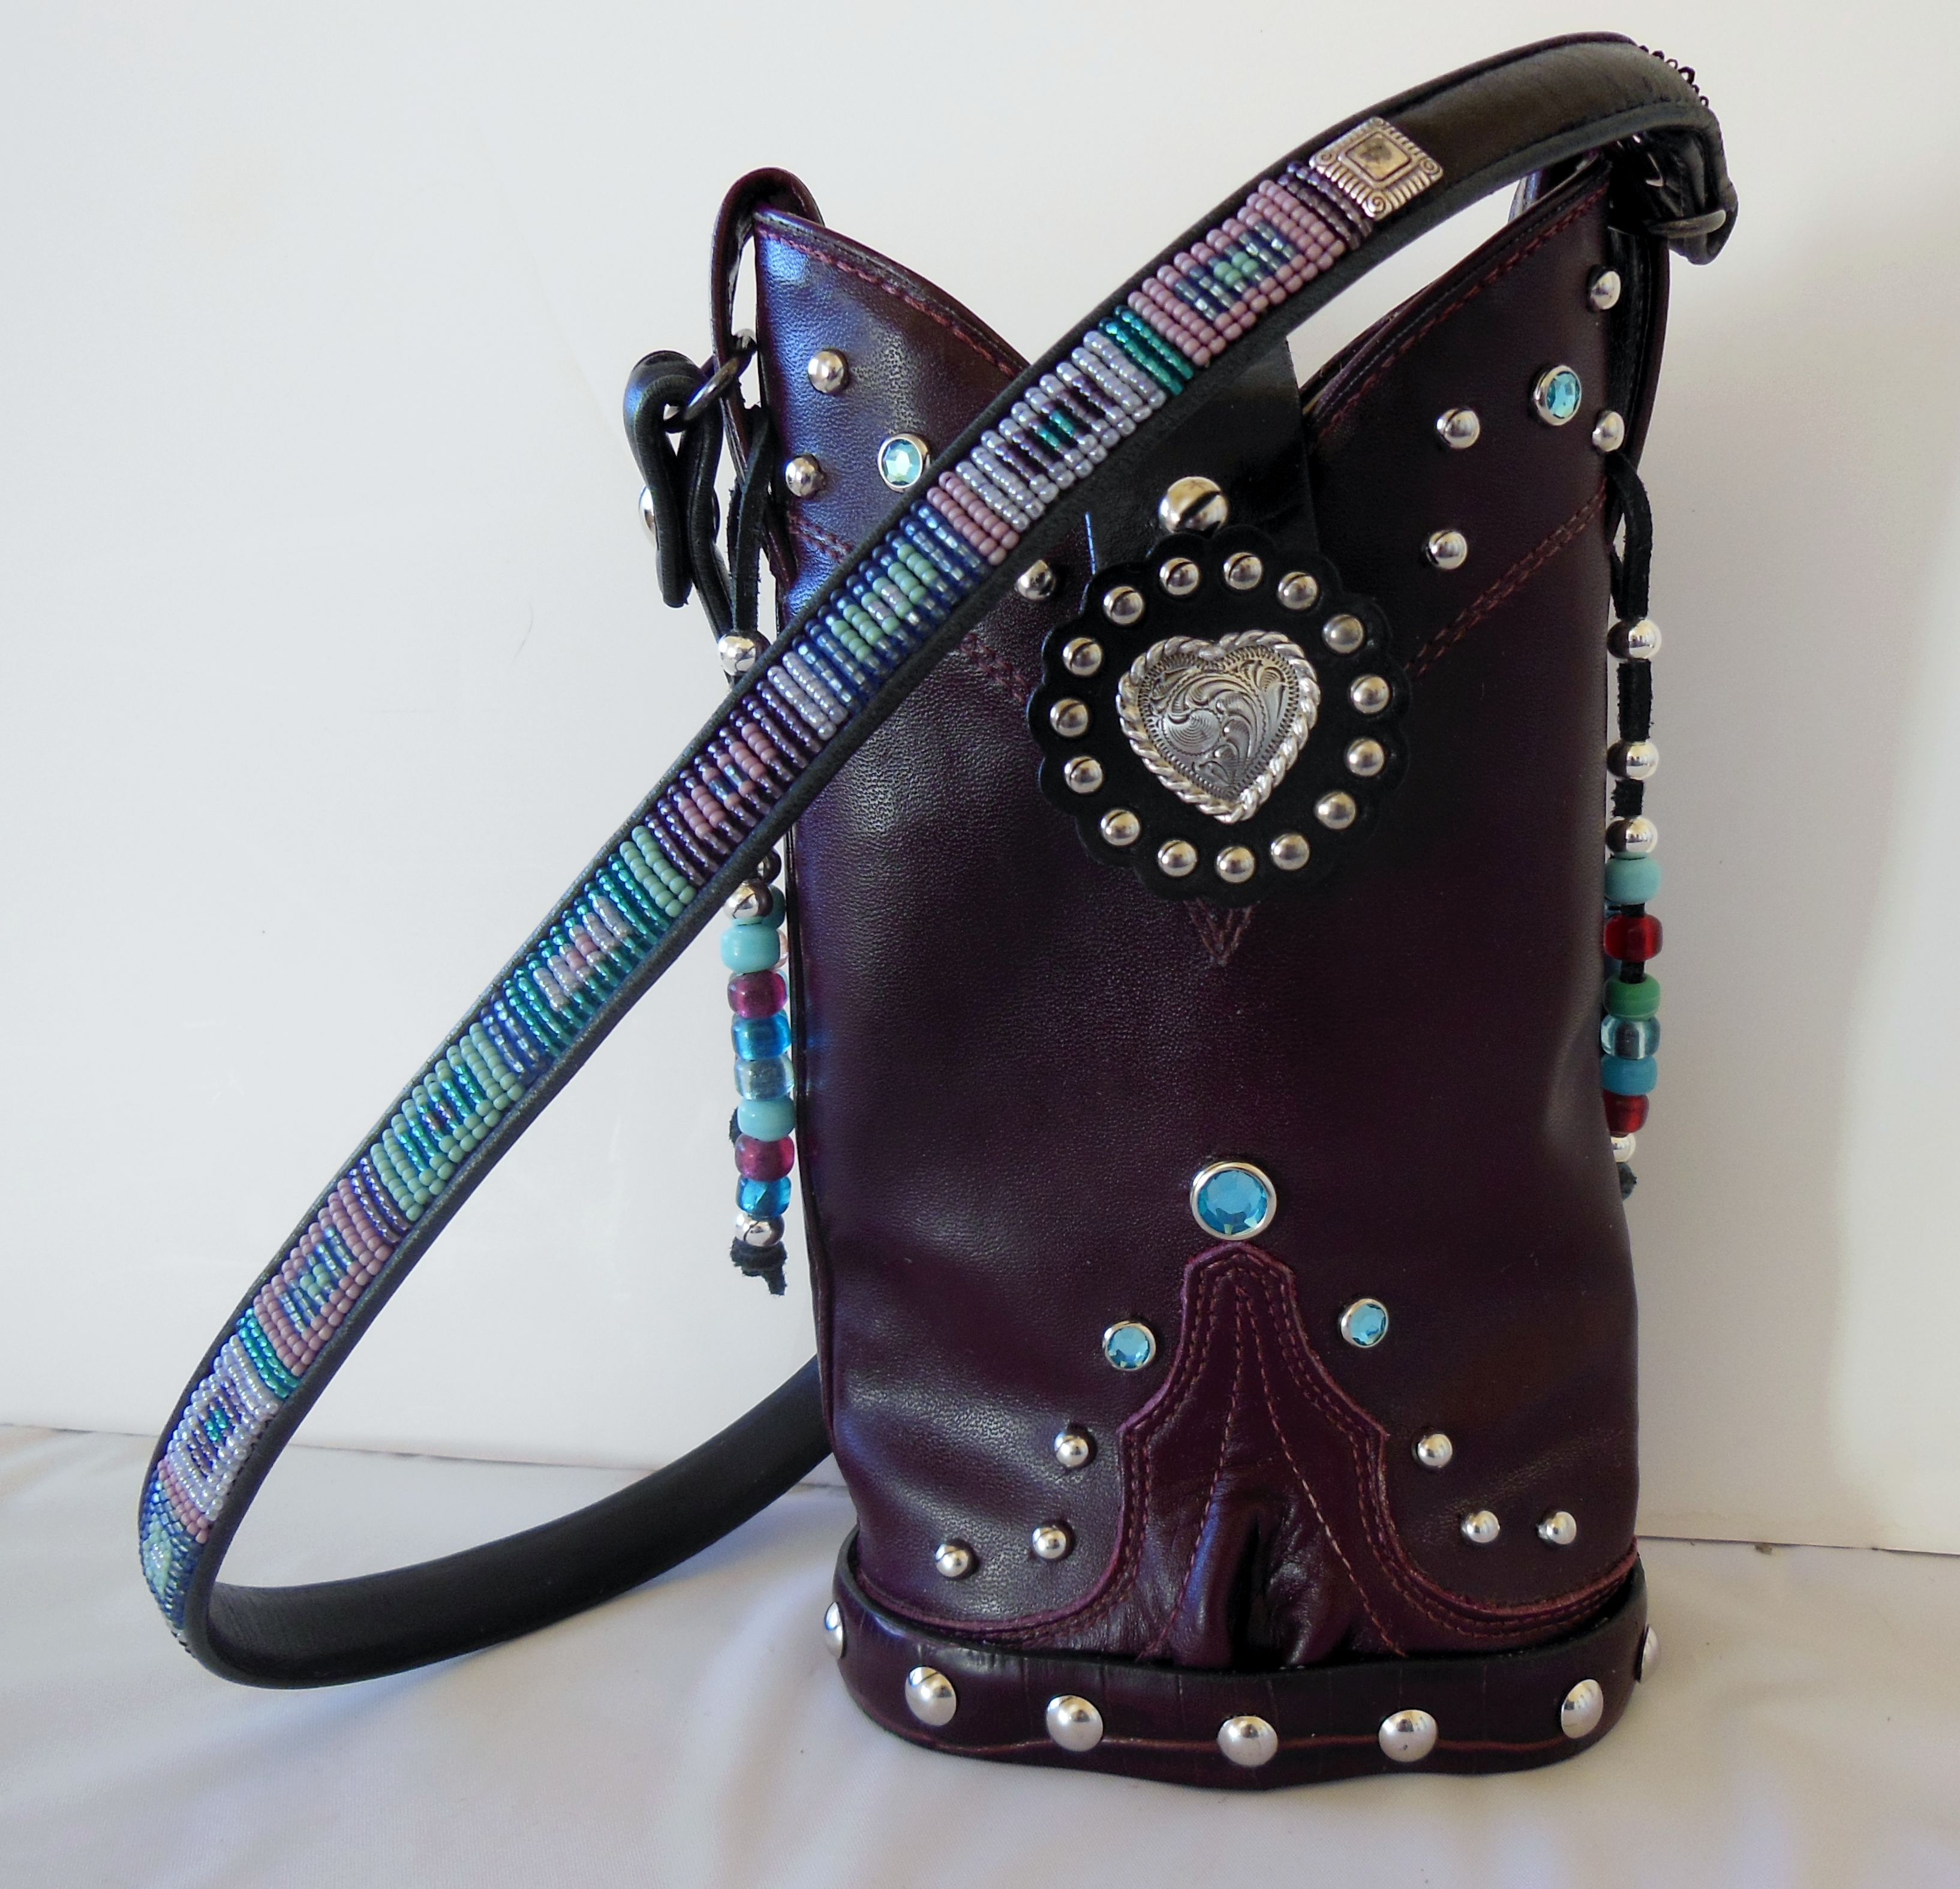 """Sweet aquamarine jeweled StageCoach Bag designed and created from vintage cowboy boots and vintage belts.  This is a beaded Brighton belt created into a carrying strap.  www.stagecoachbagsandcollectibles.com   Each bag is """"One of a Kind"""", handcrafted, leather, numbered and named, bio cards available for each bag"""